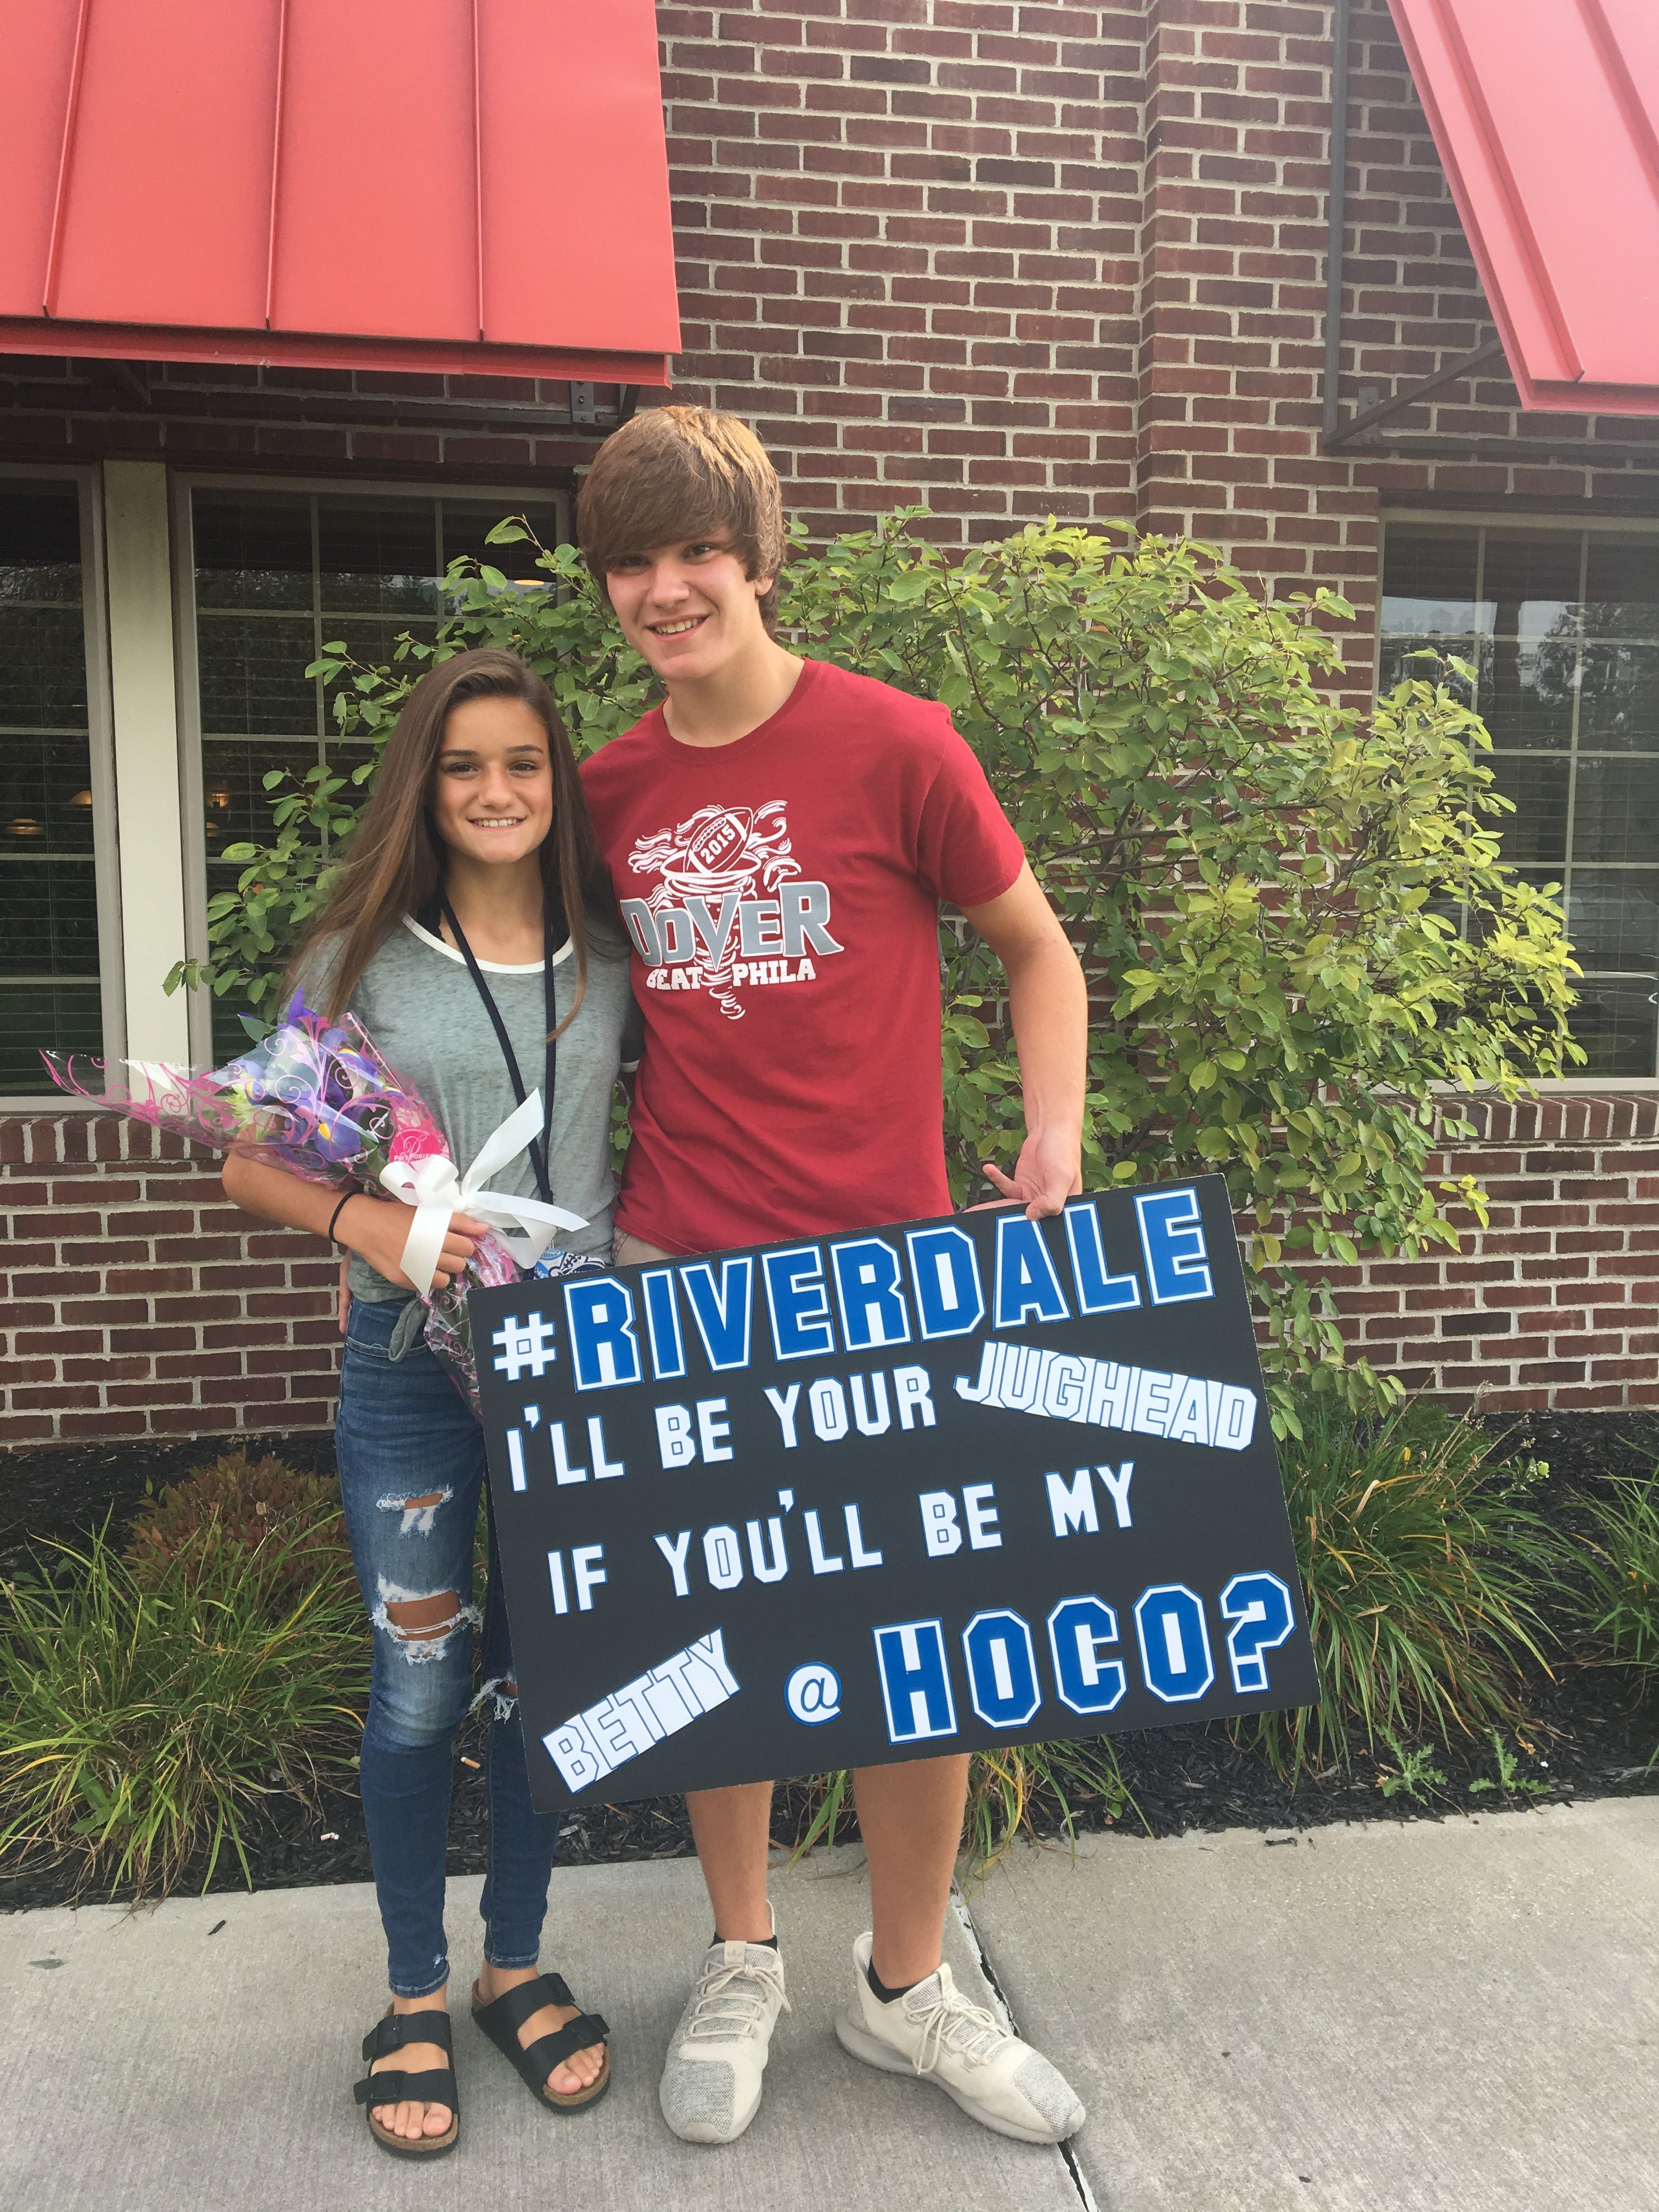 Riverdale Homecoming Proposal Halloween Cute Prom